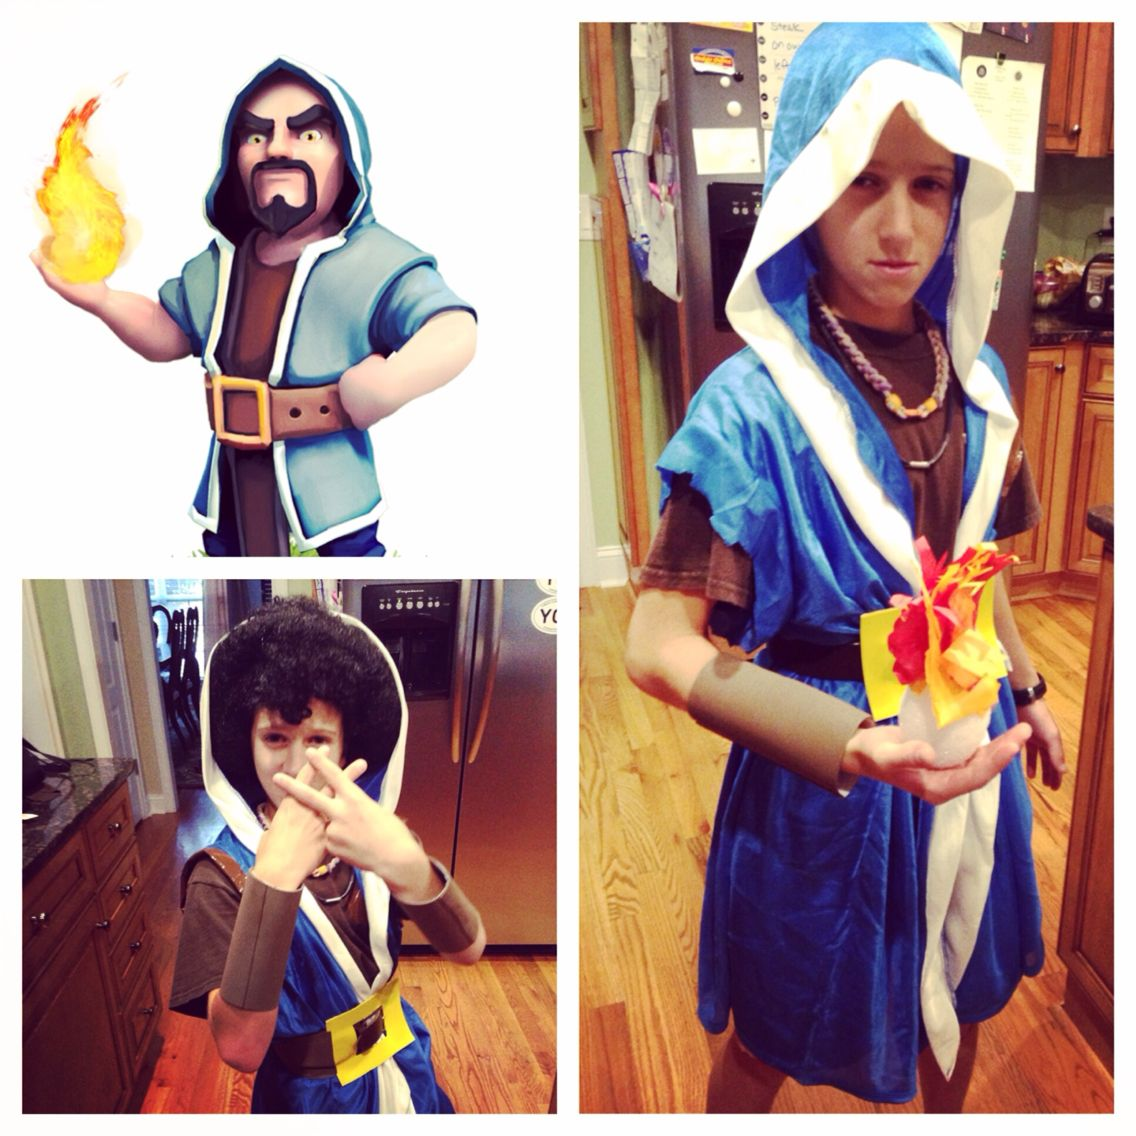 Homemade clash of clans wizard costume! | Make it a home ...